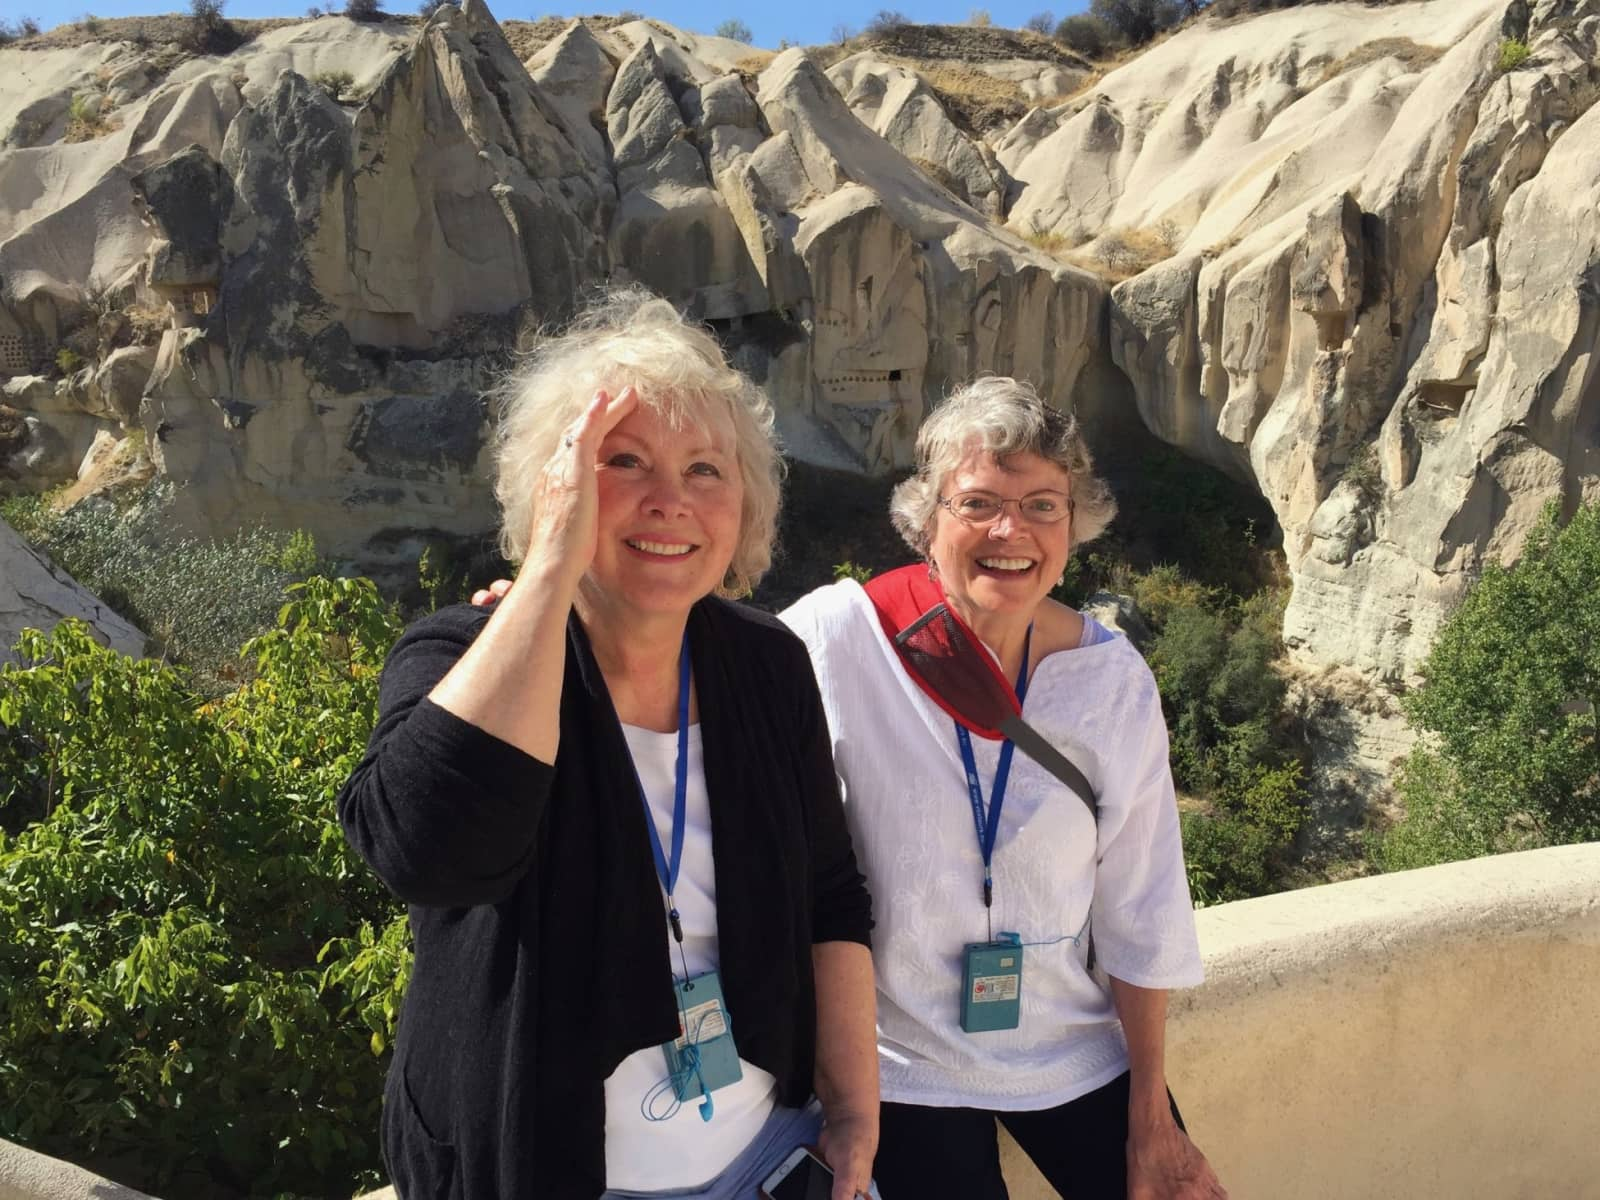 Jean & Elaine from Provo, Utah, United States